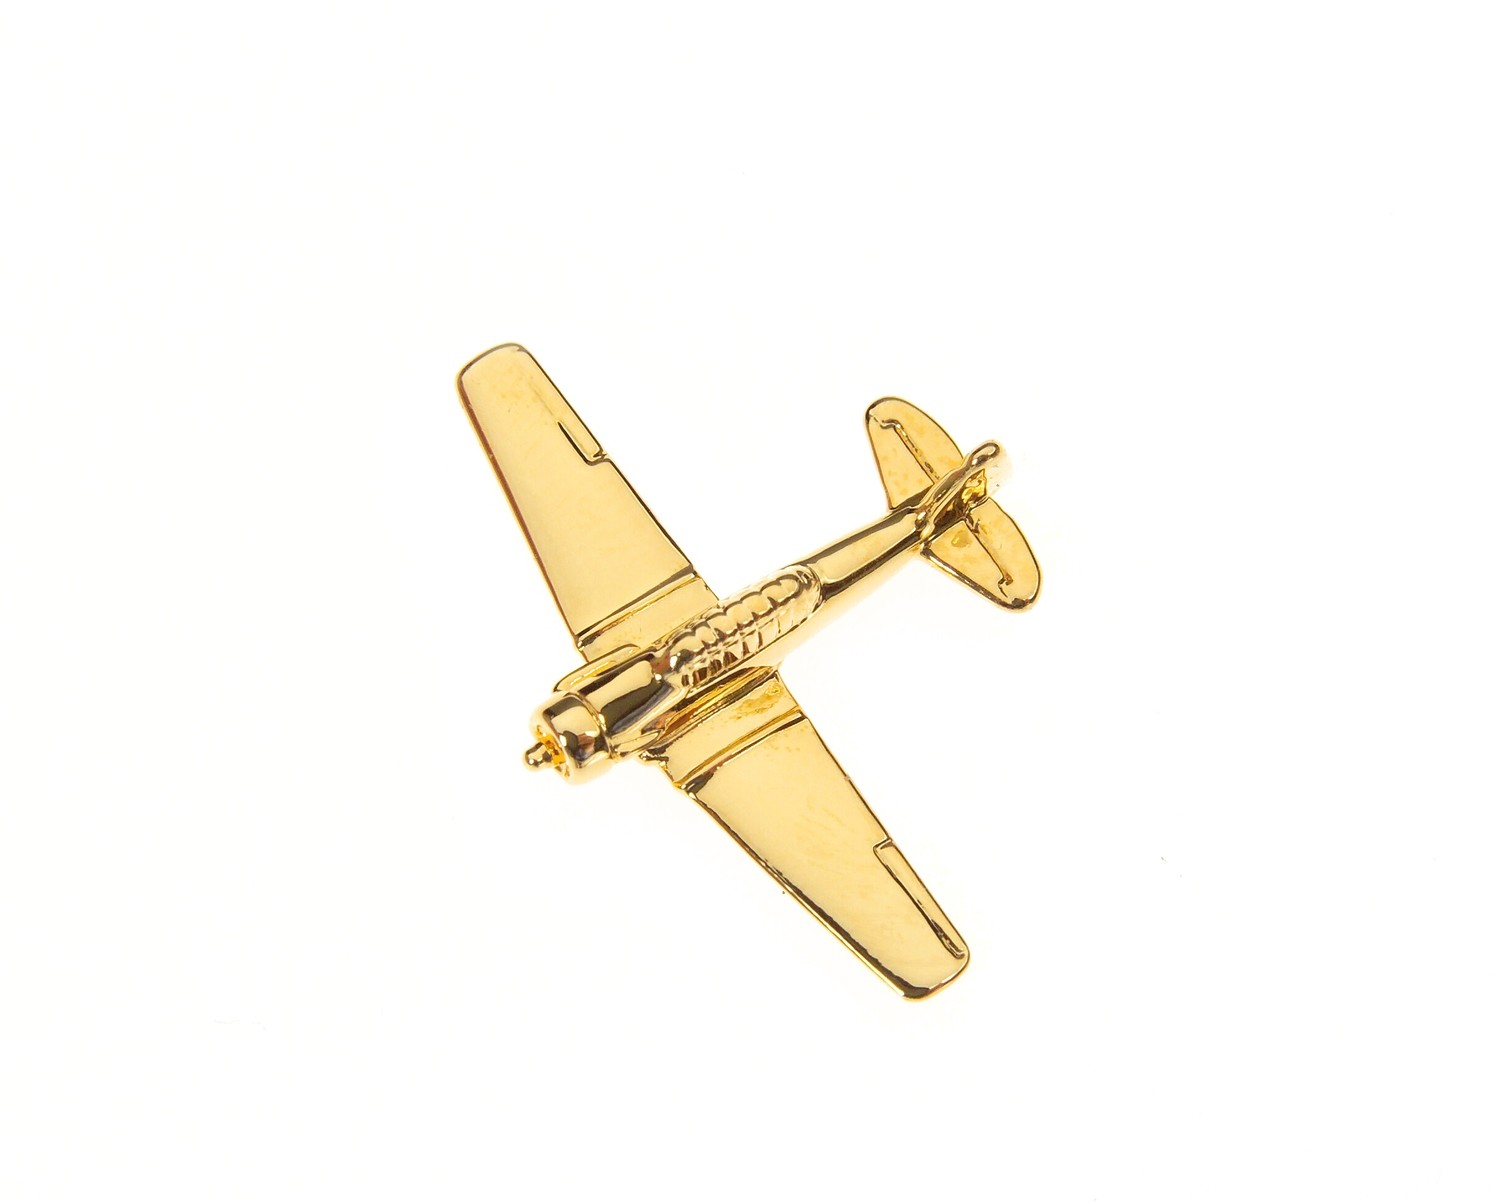 Harvard AT6 Gold Plated Tie / Lapel Pin